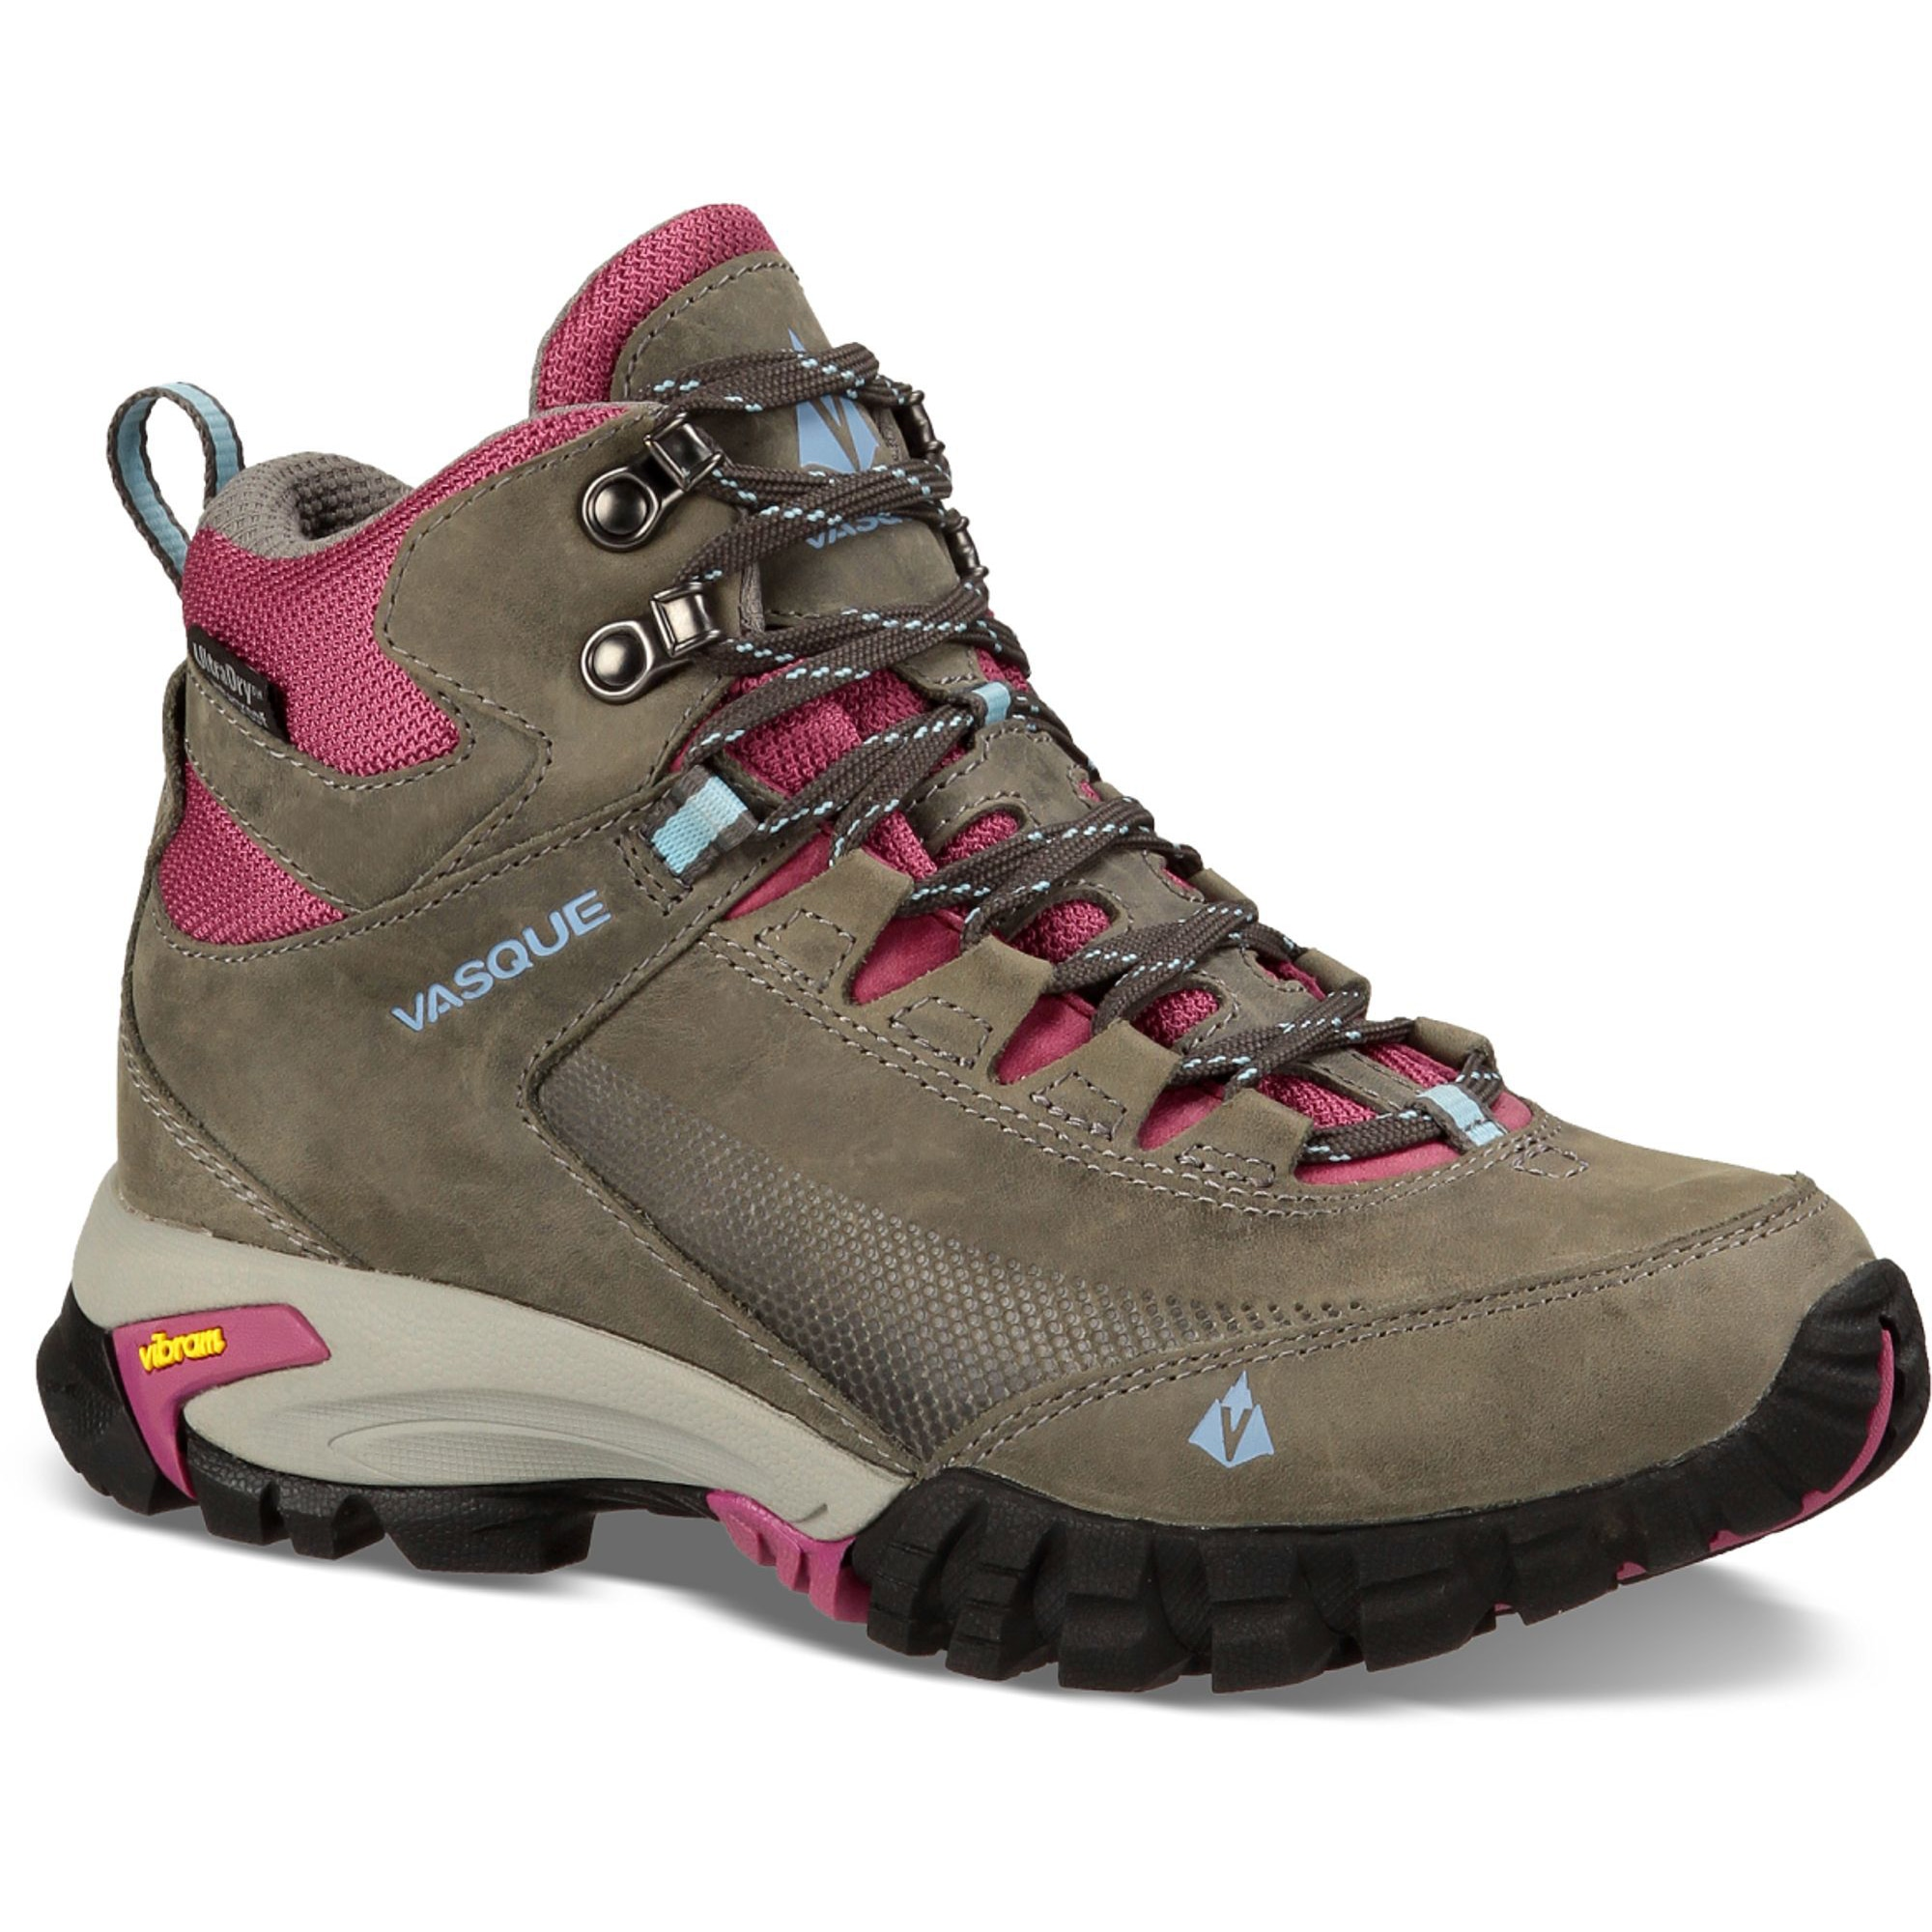 Talus Trek Boot - Women's